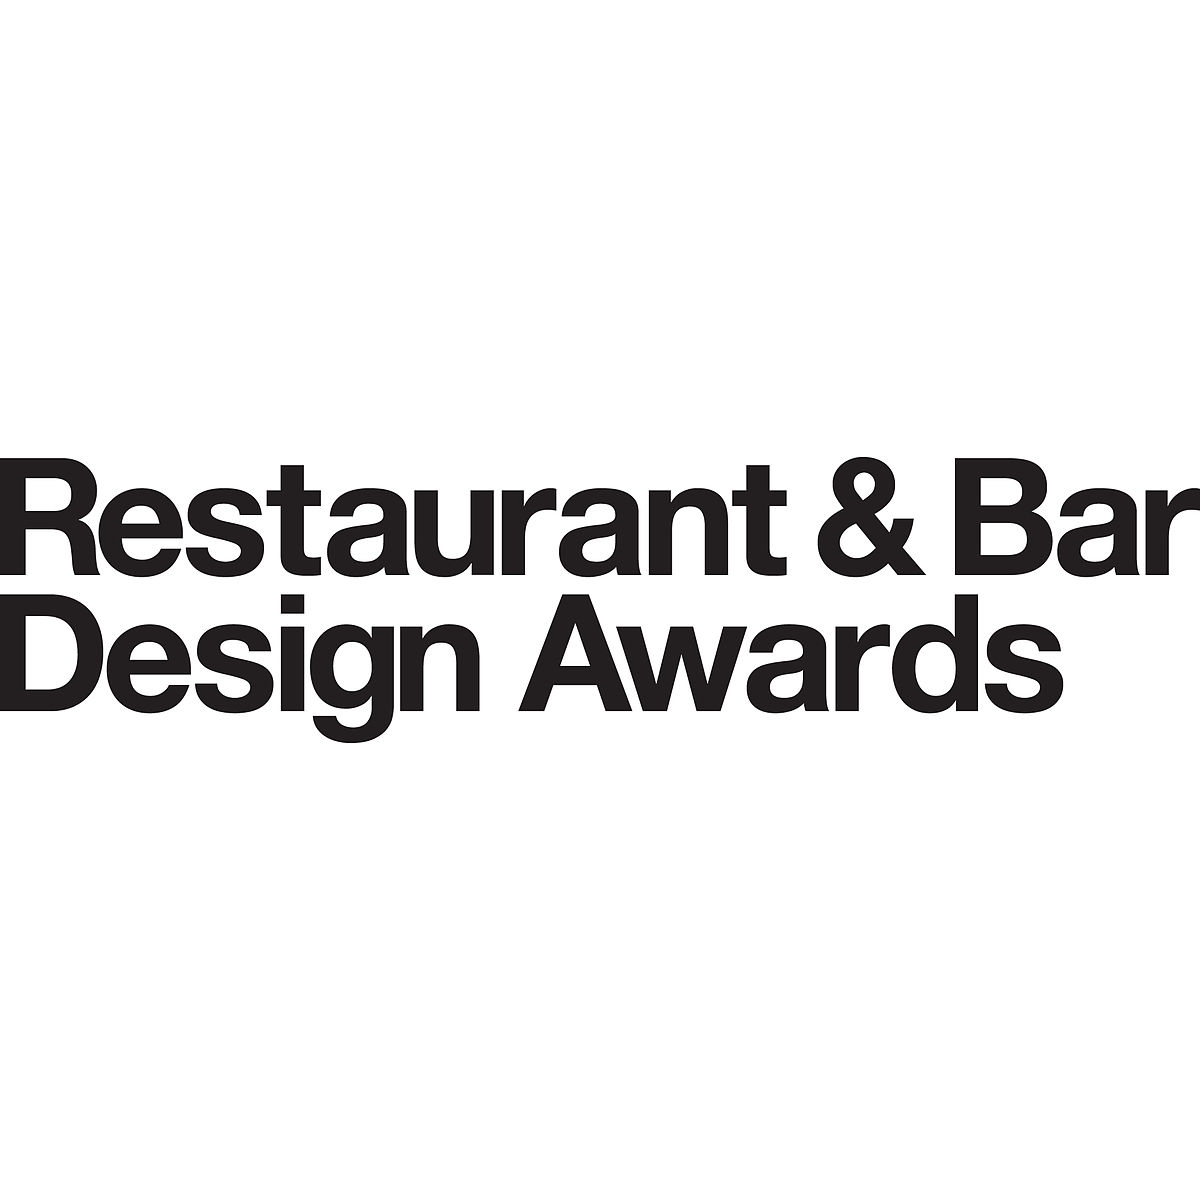 Restaurant bar design awards wikipedia